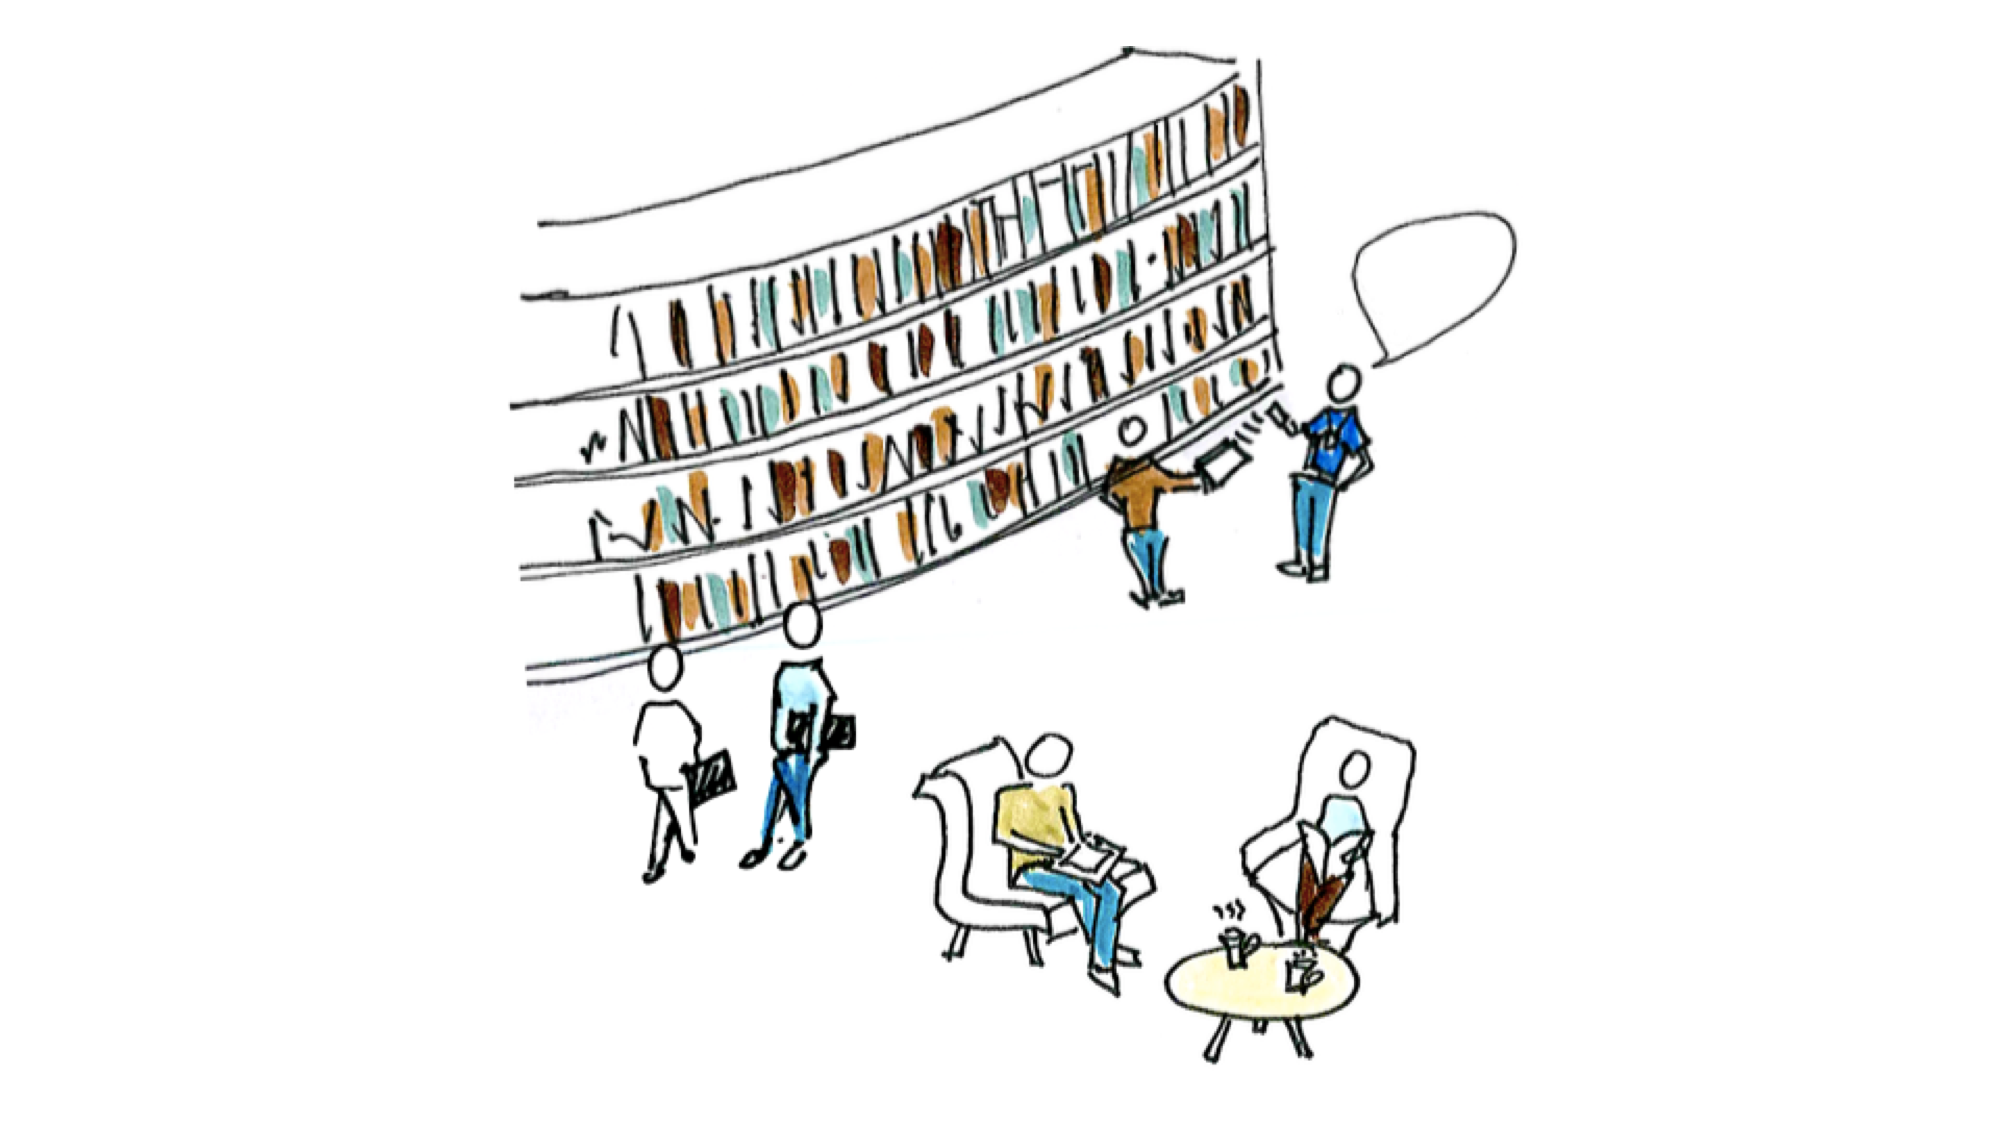 Hand drawn sketch of people talking and working in a library, near book shelves